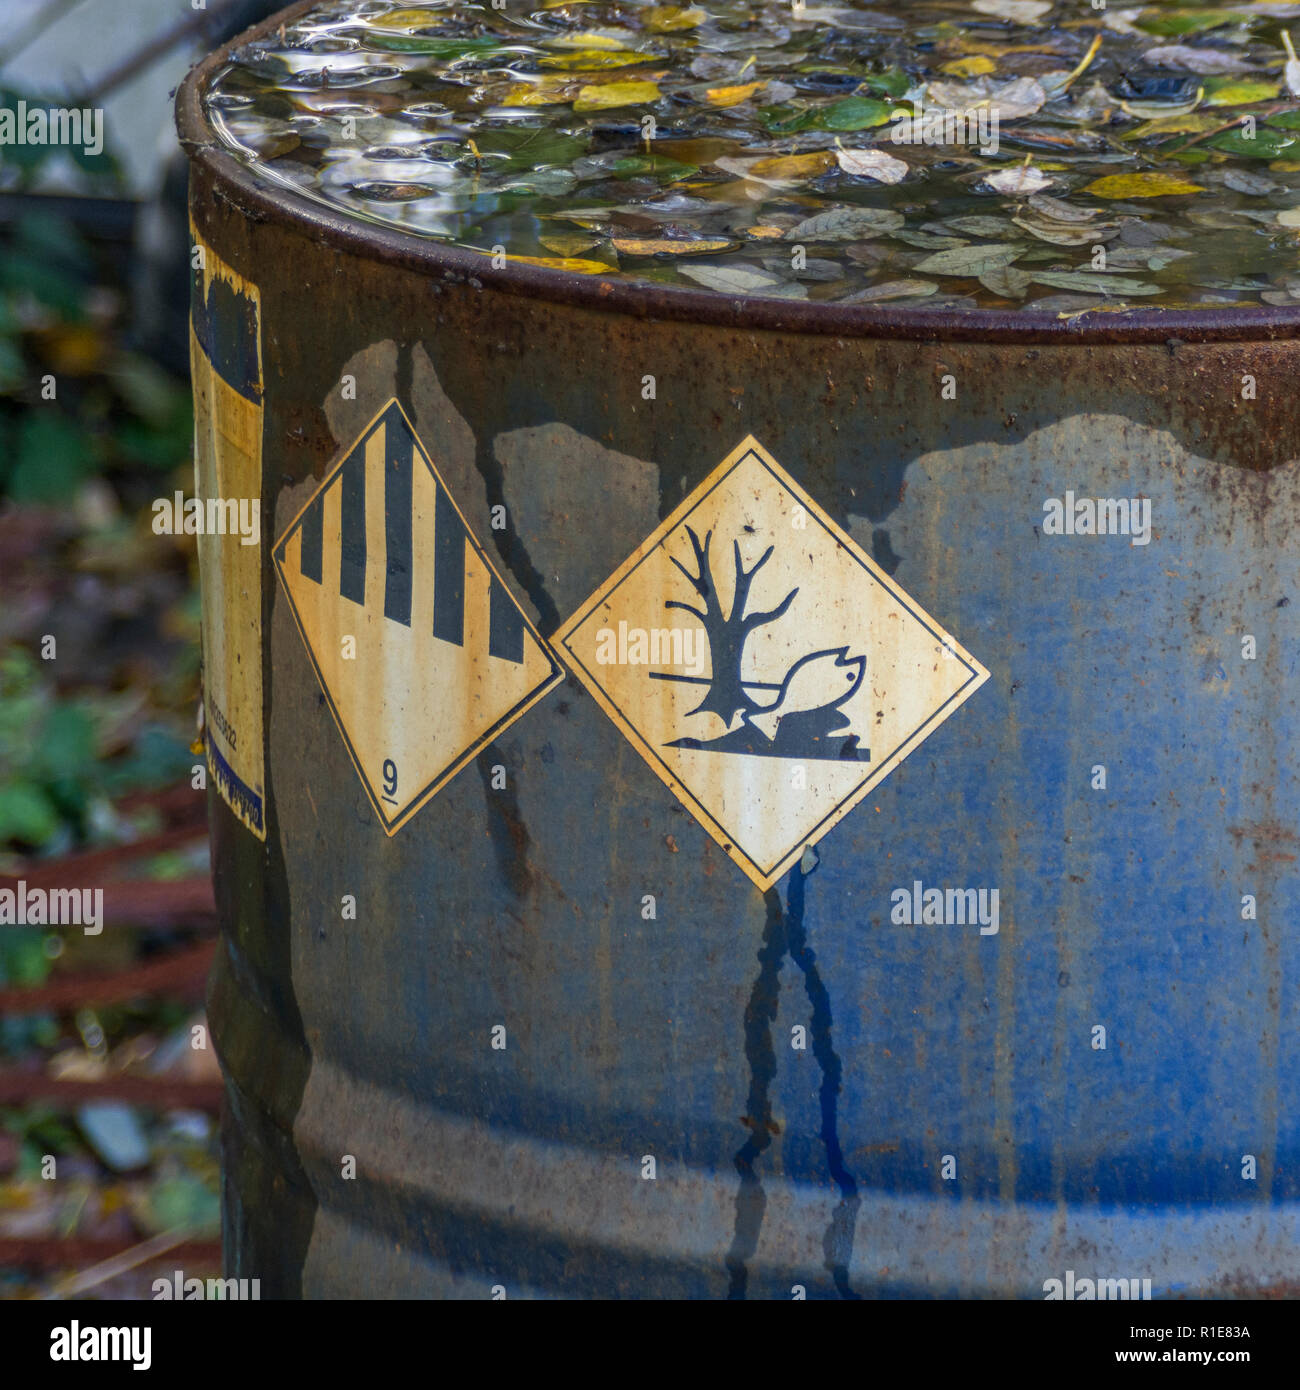 CHIP Hazardous to the Environments chemicals warning sign on industrial chemicals drum. - Stock Image